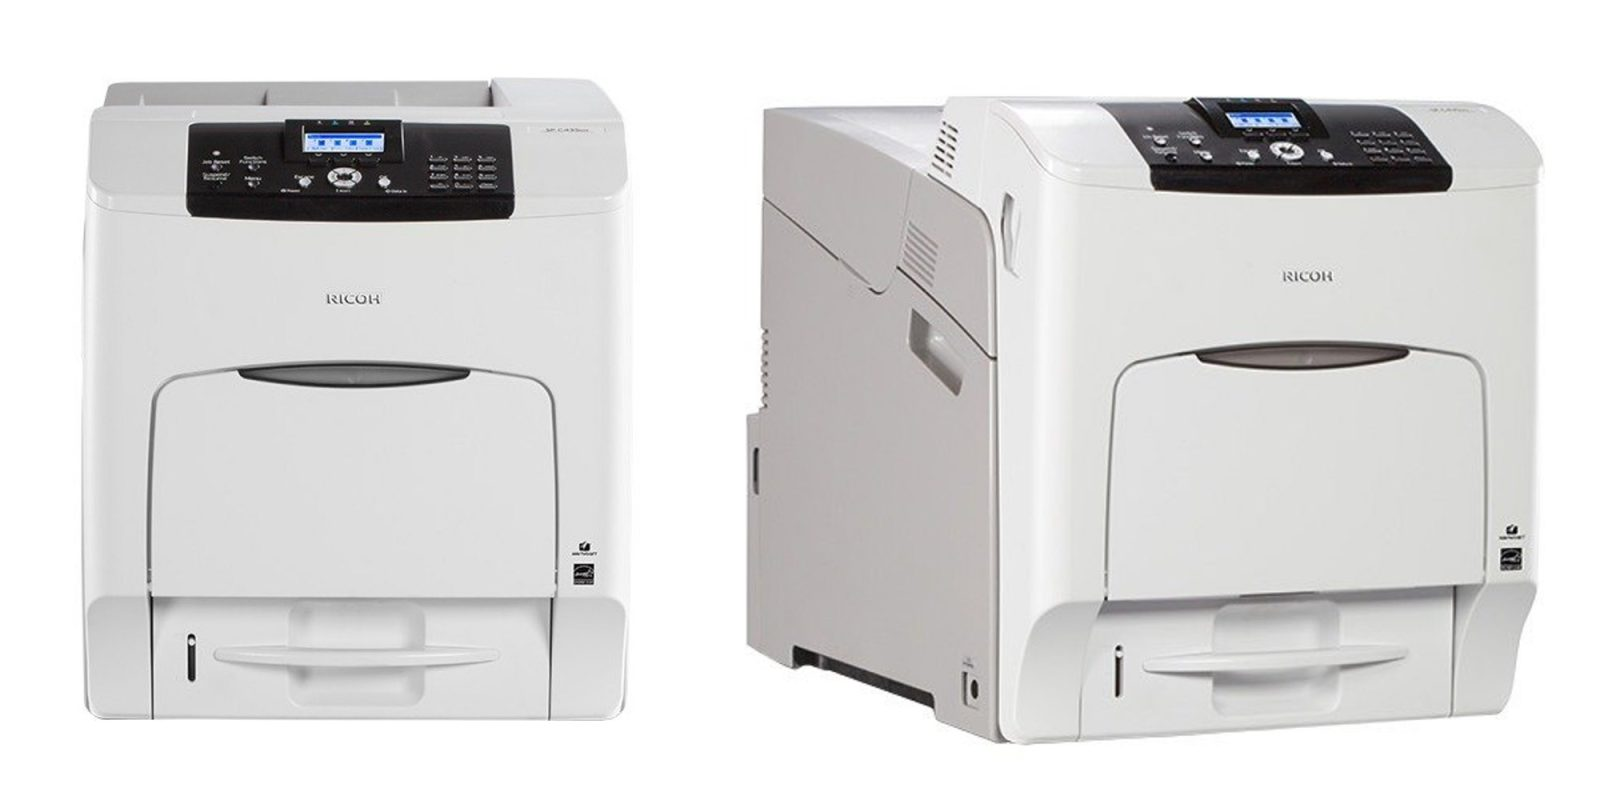 Ricoh's Color Laser Printer drops to new low at $199 shipped (Reg. $300)